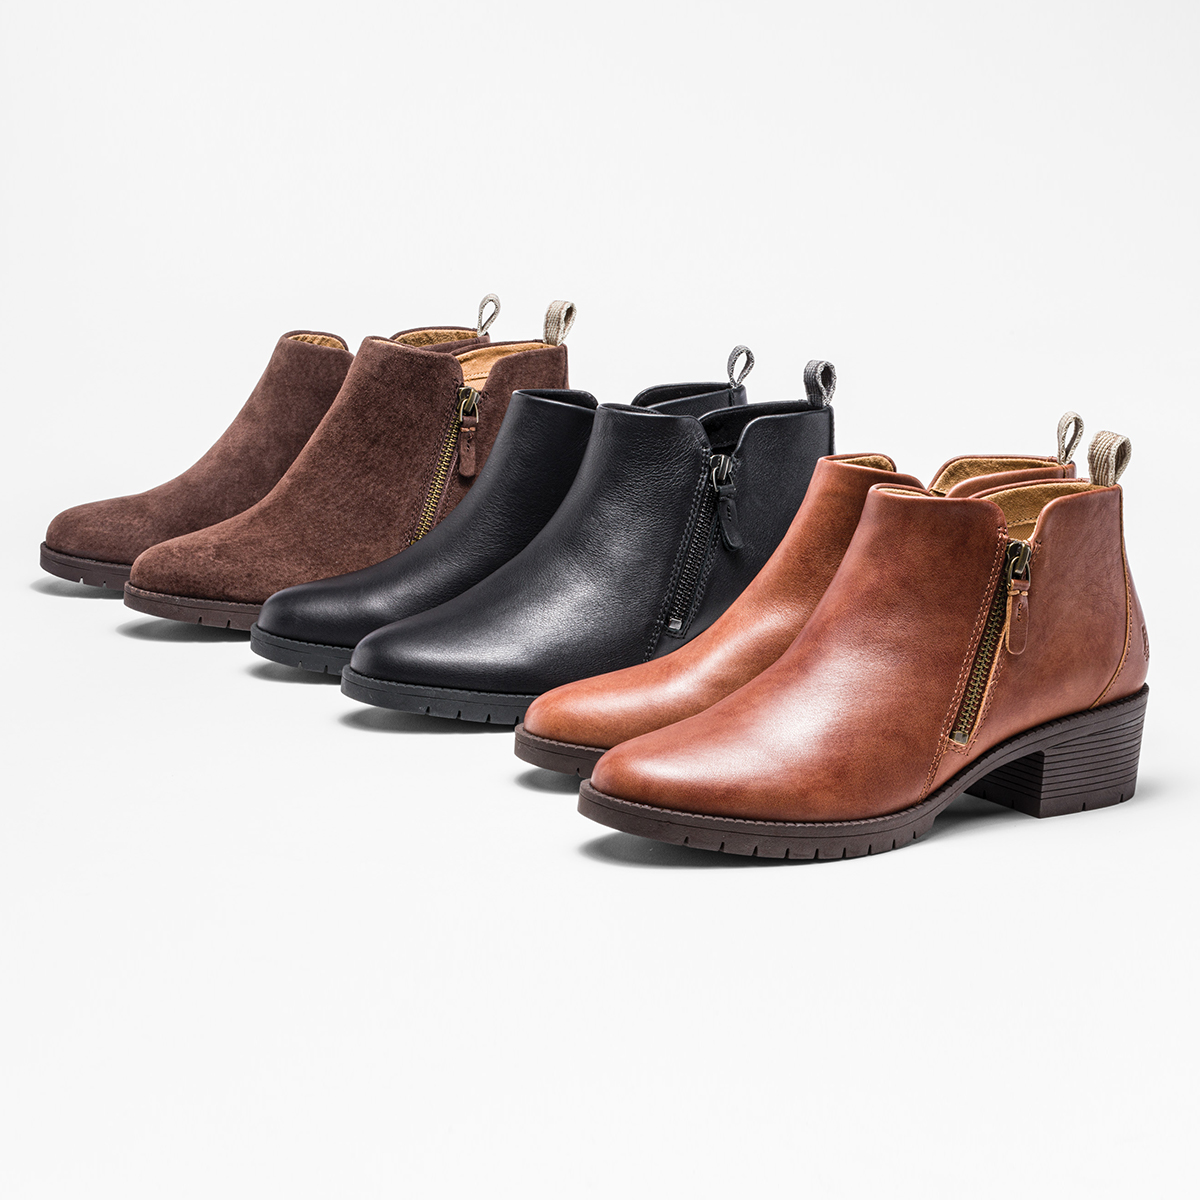 Hadley Sidezip Boot   Cognac Leather, Black Leather, Brown Suede   Hush Puppies